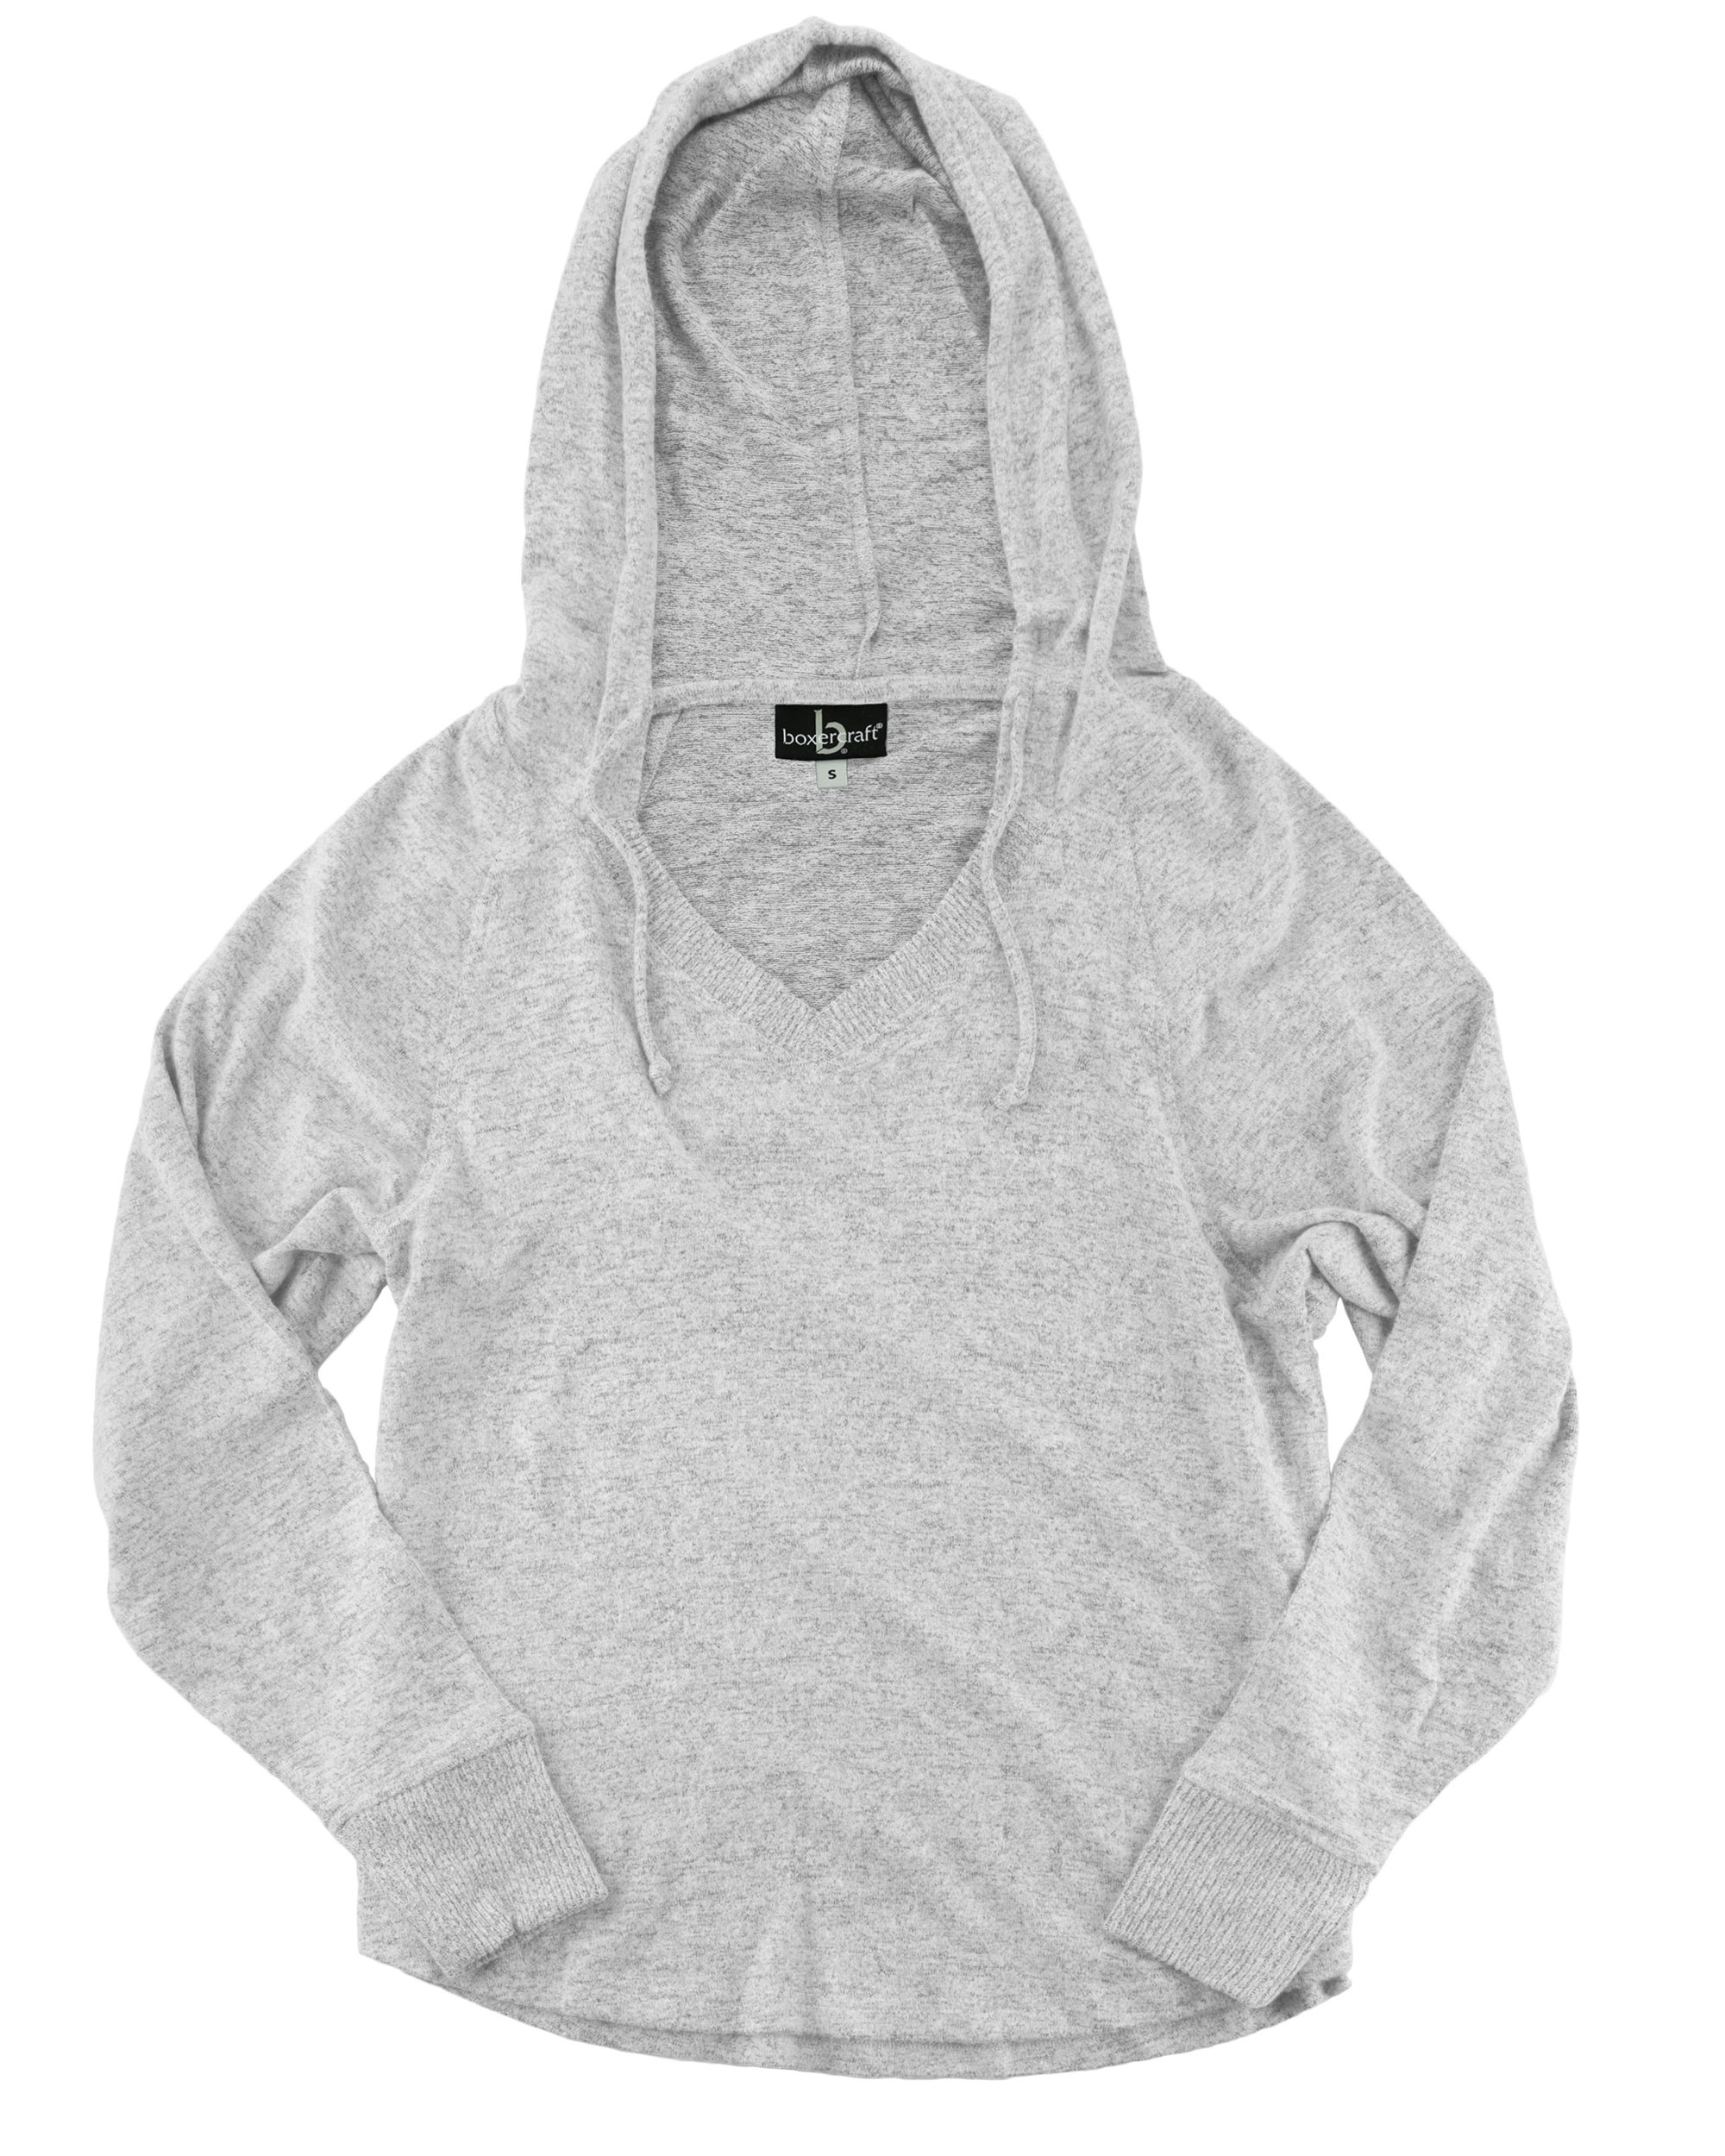 Boxercraft L07 - Women's Cuddle Fleece V-Neck Hooded ...